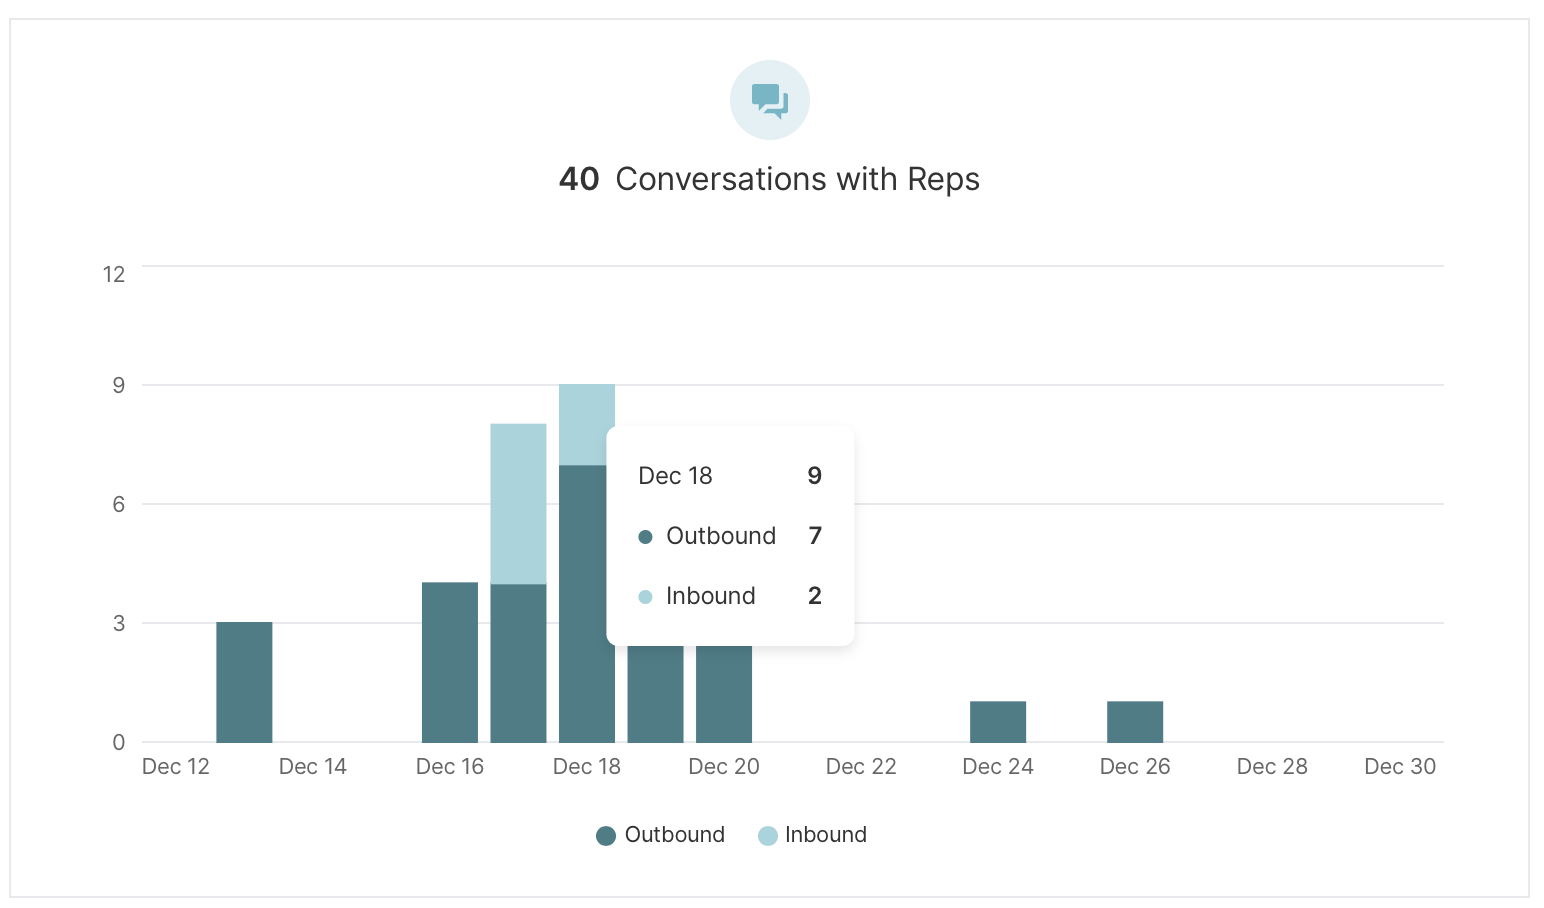 Bar graph displaying a breakdown of total inbound and outbound conversations each day